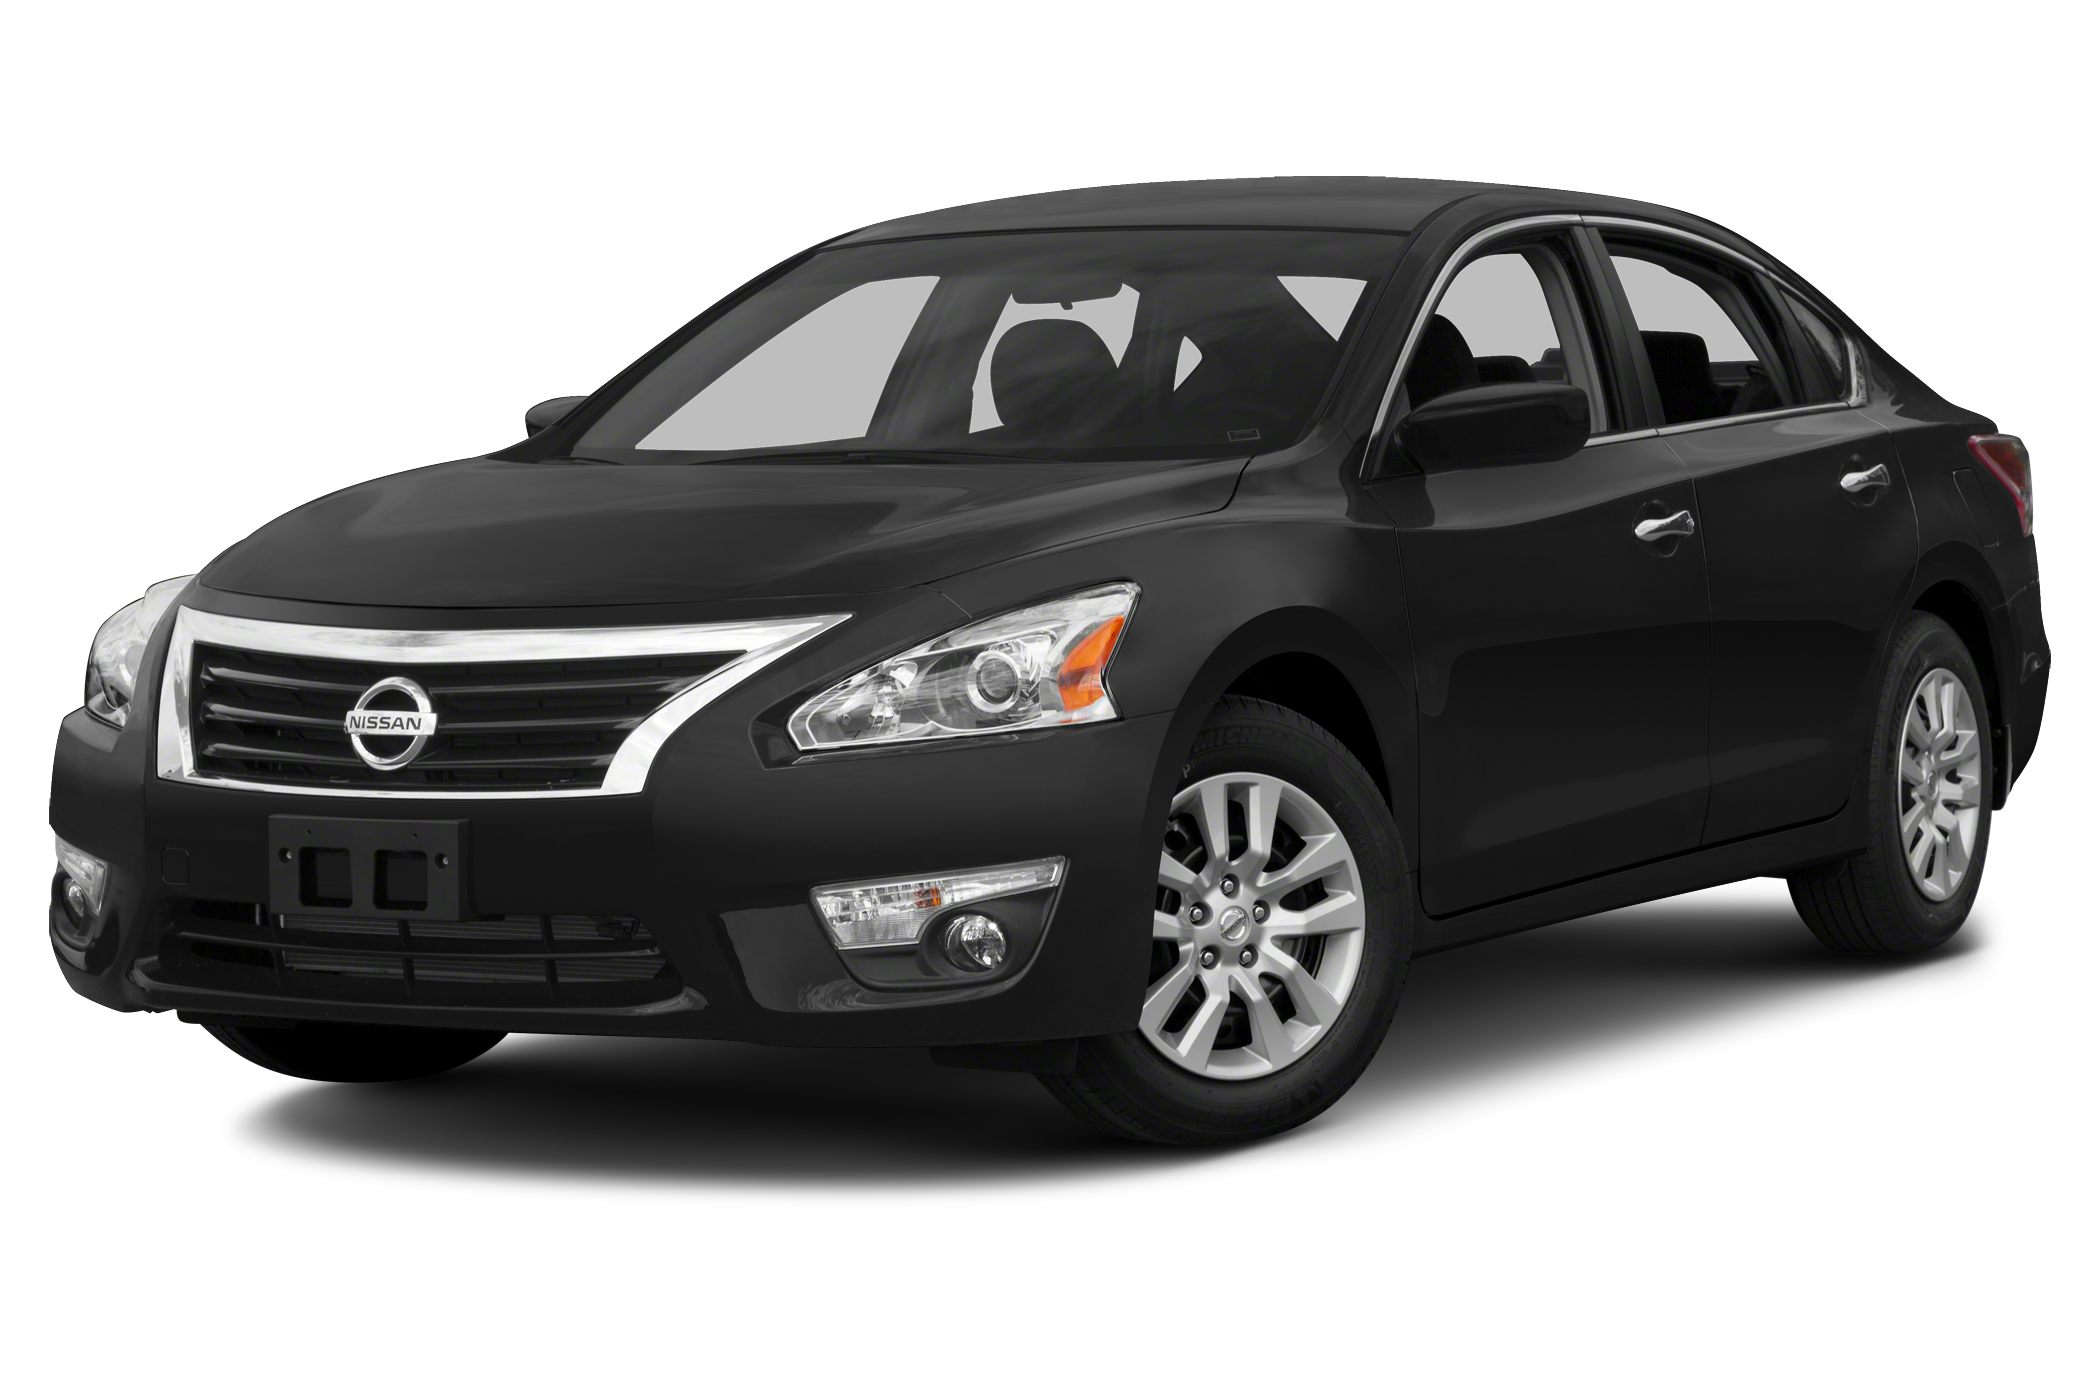 2015 Nissan Altima 2.5 S Sedan for sale in Beech Island for $18,977 with 10 miles